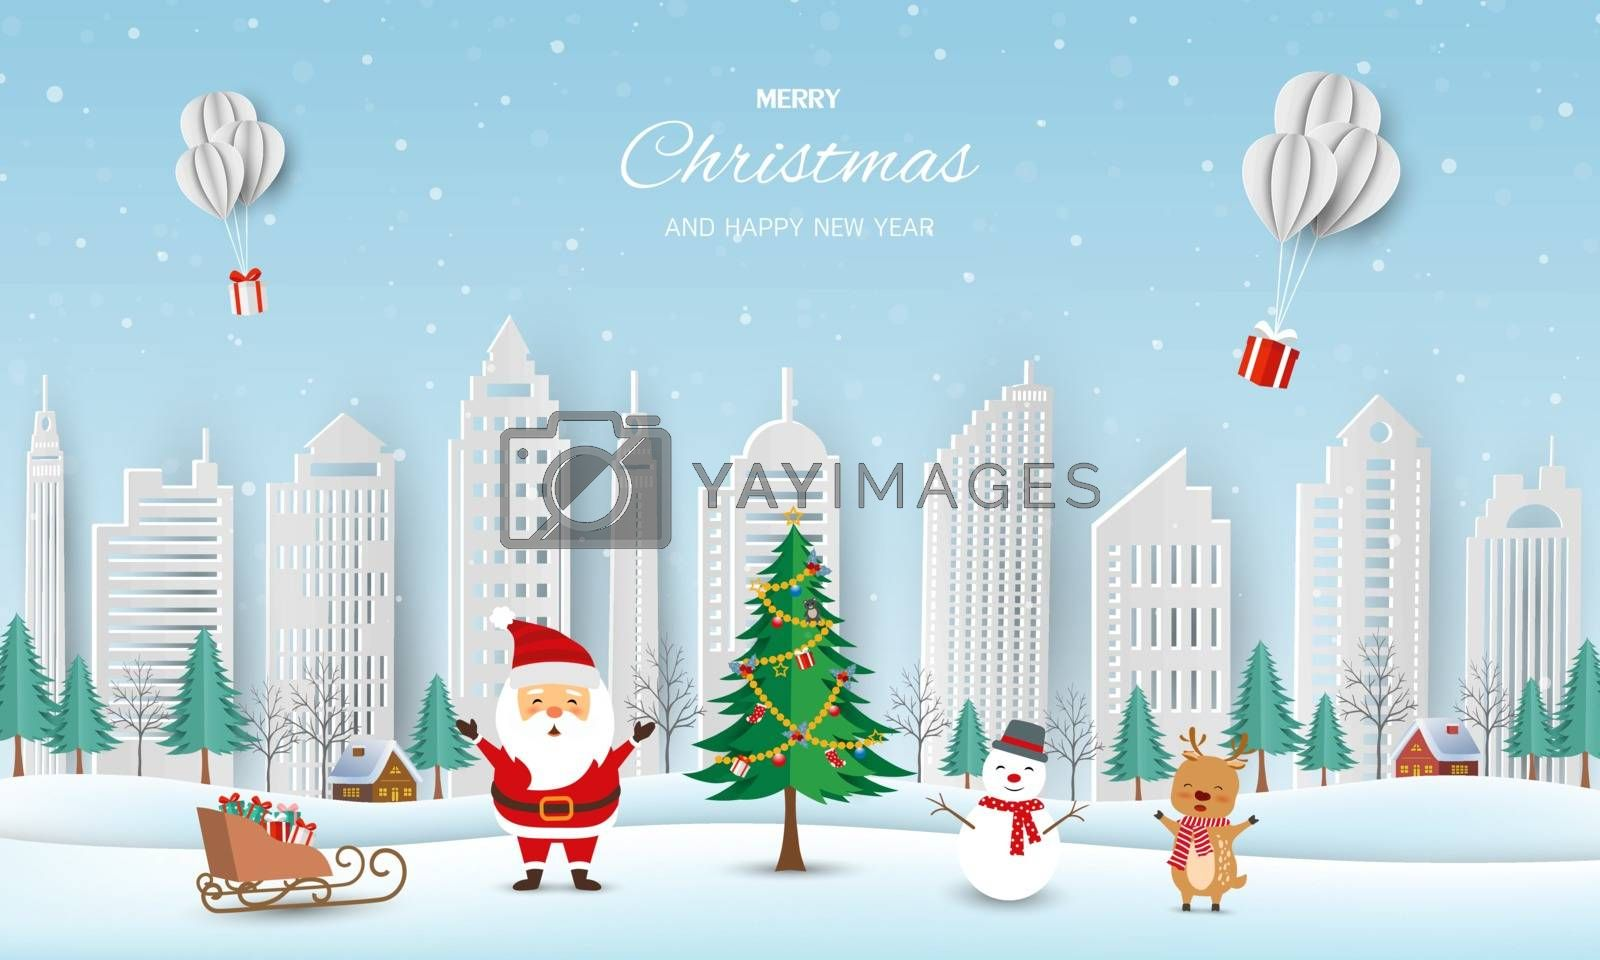 Merry Christmas and Happy new year greeting card,winter landscape with Santa Claus and friends send gift boxes by balloons by PIMPAKA